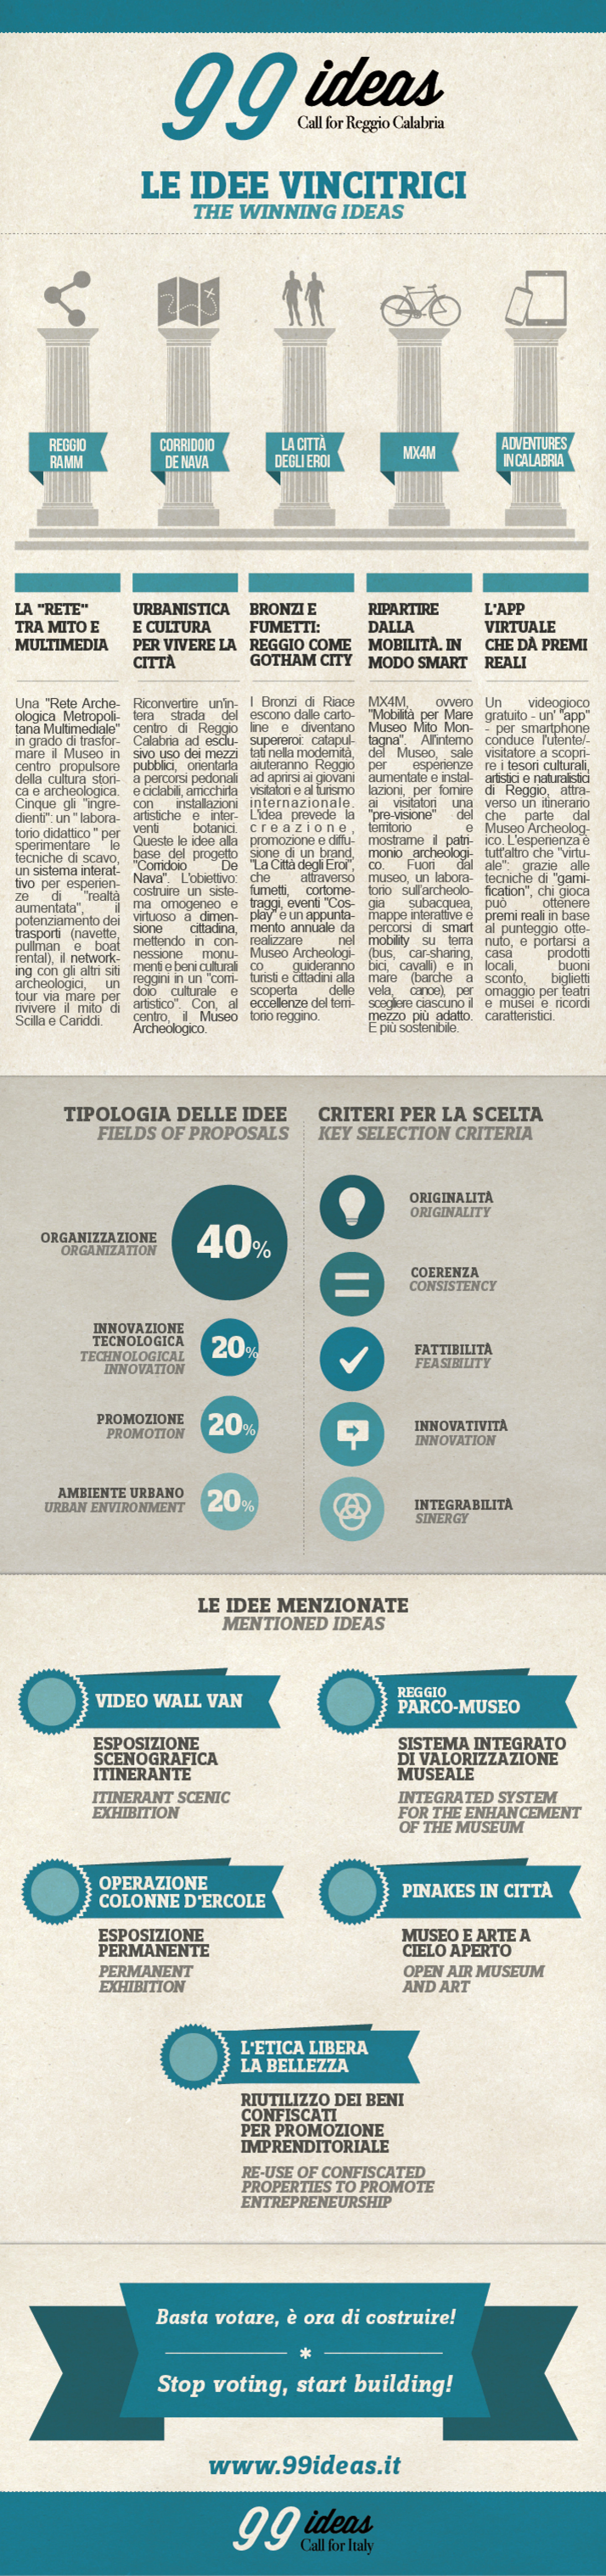 #99ideas Call for #ReggioCalabria - idee vincenti - winning ideas Infographic